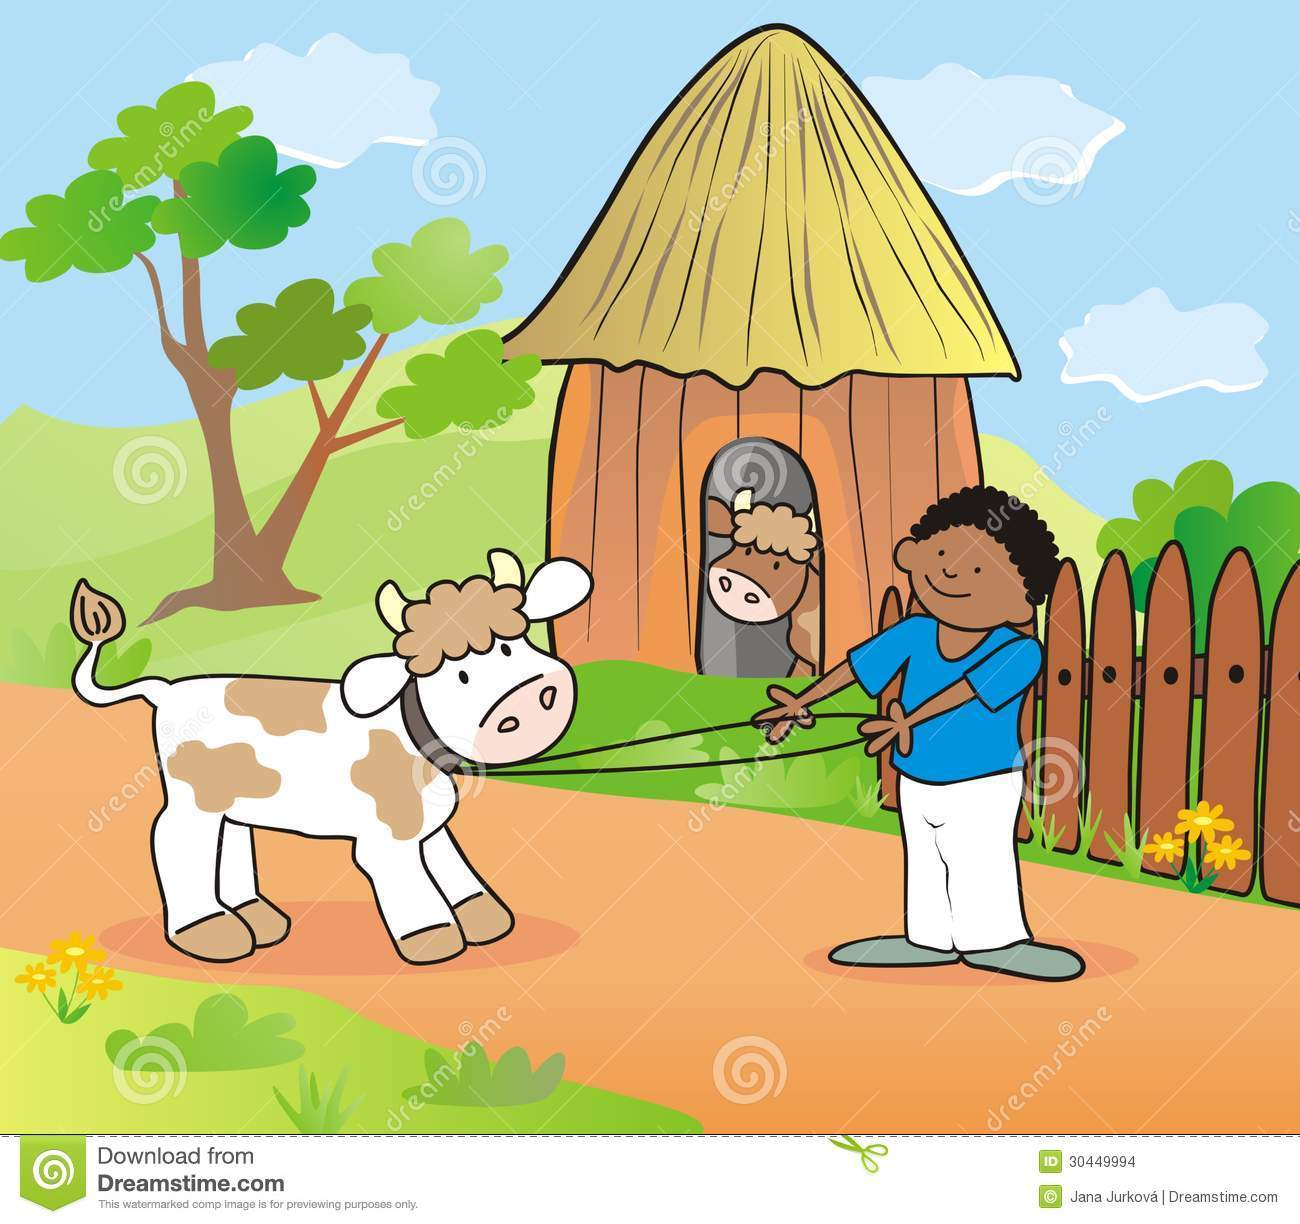 Clipart cowshed svg download Cowshed clipart 3 » Clipart Portal svg download